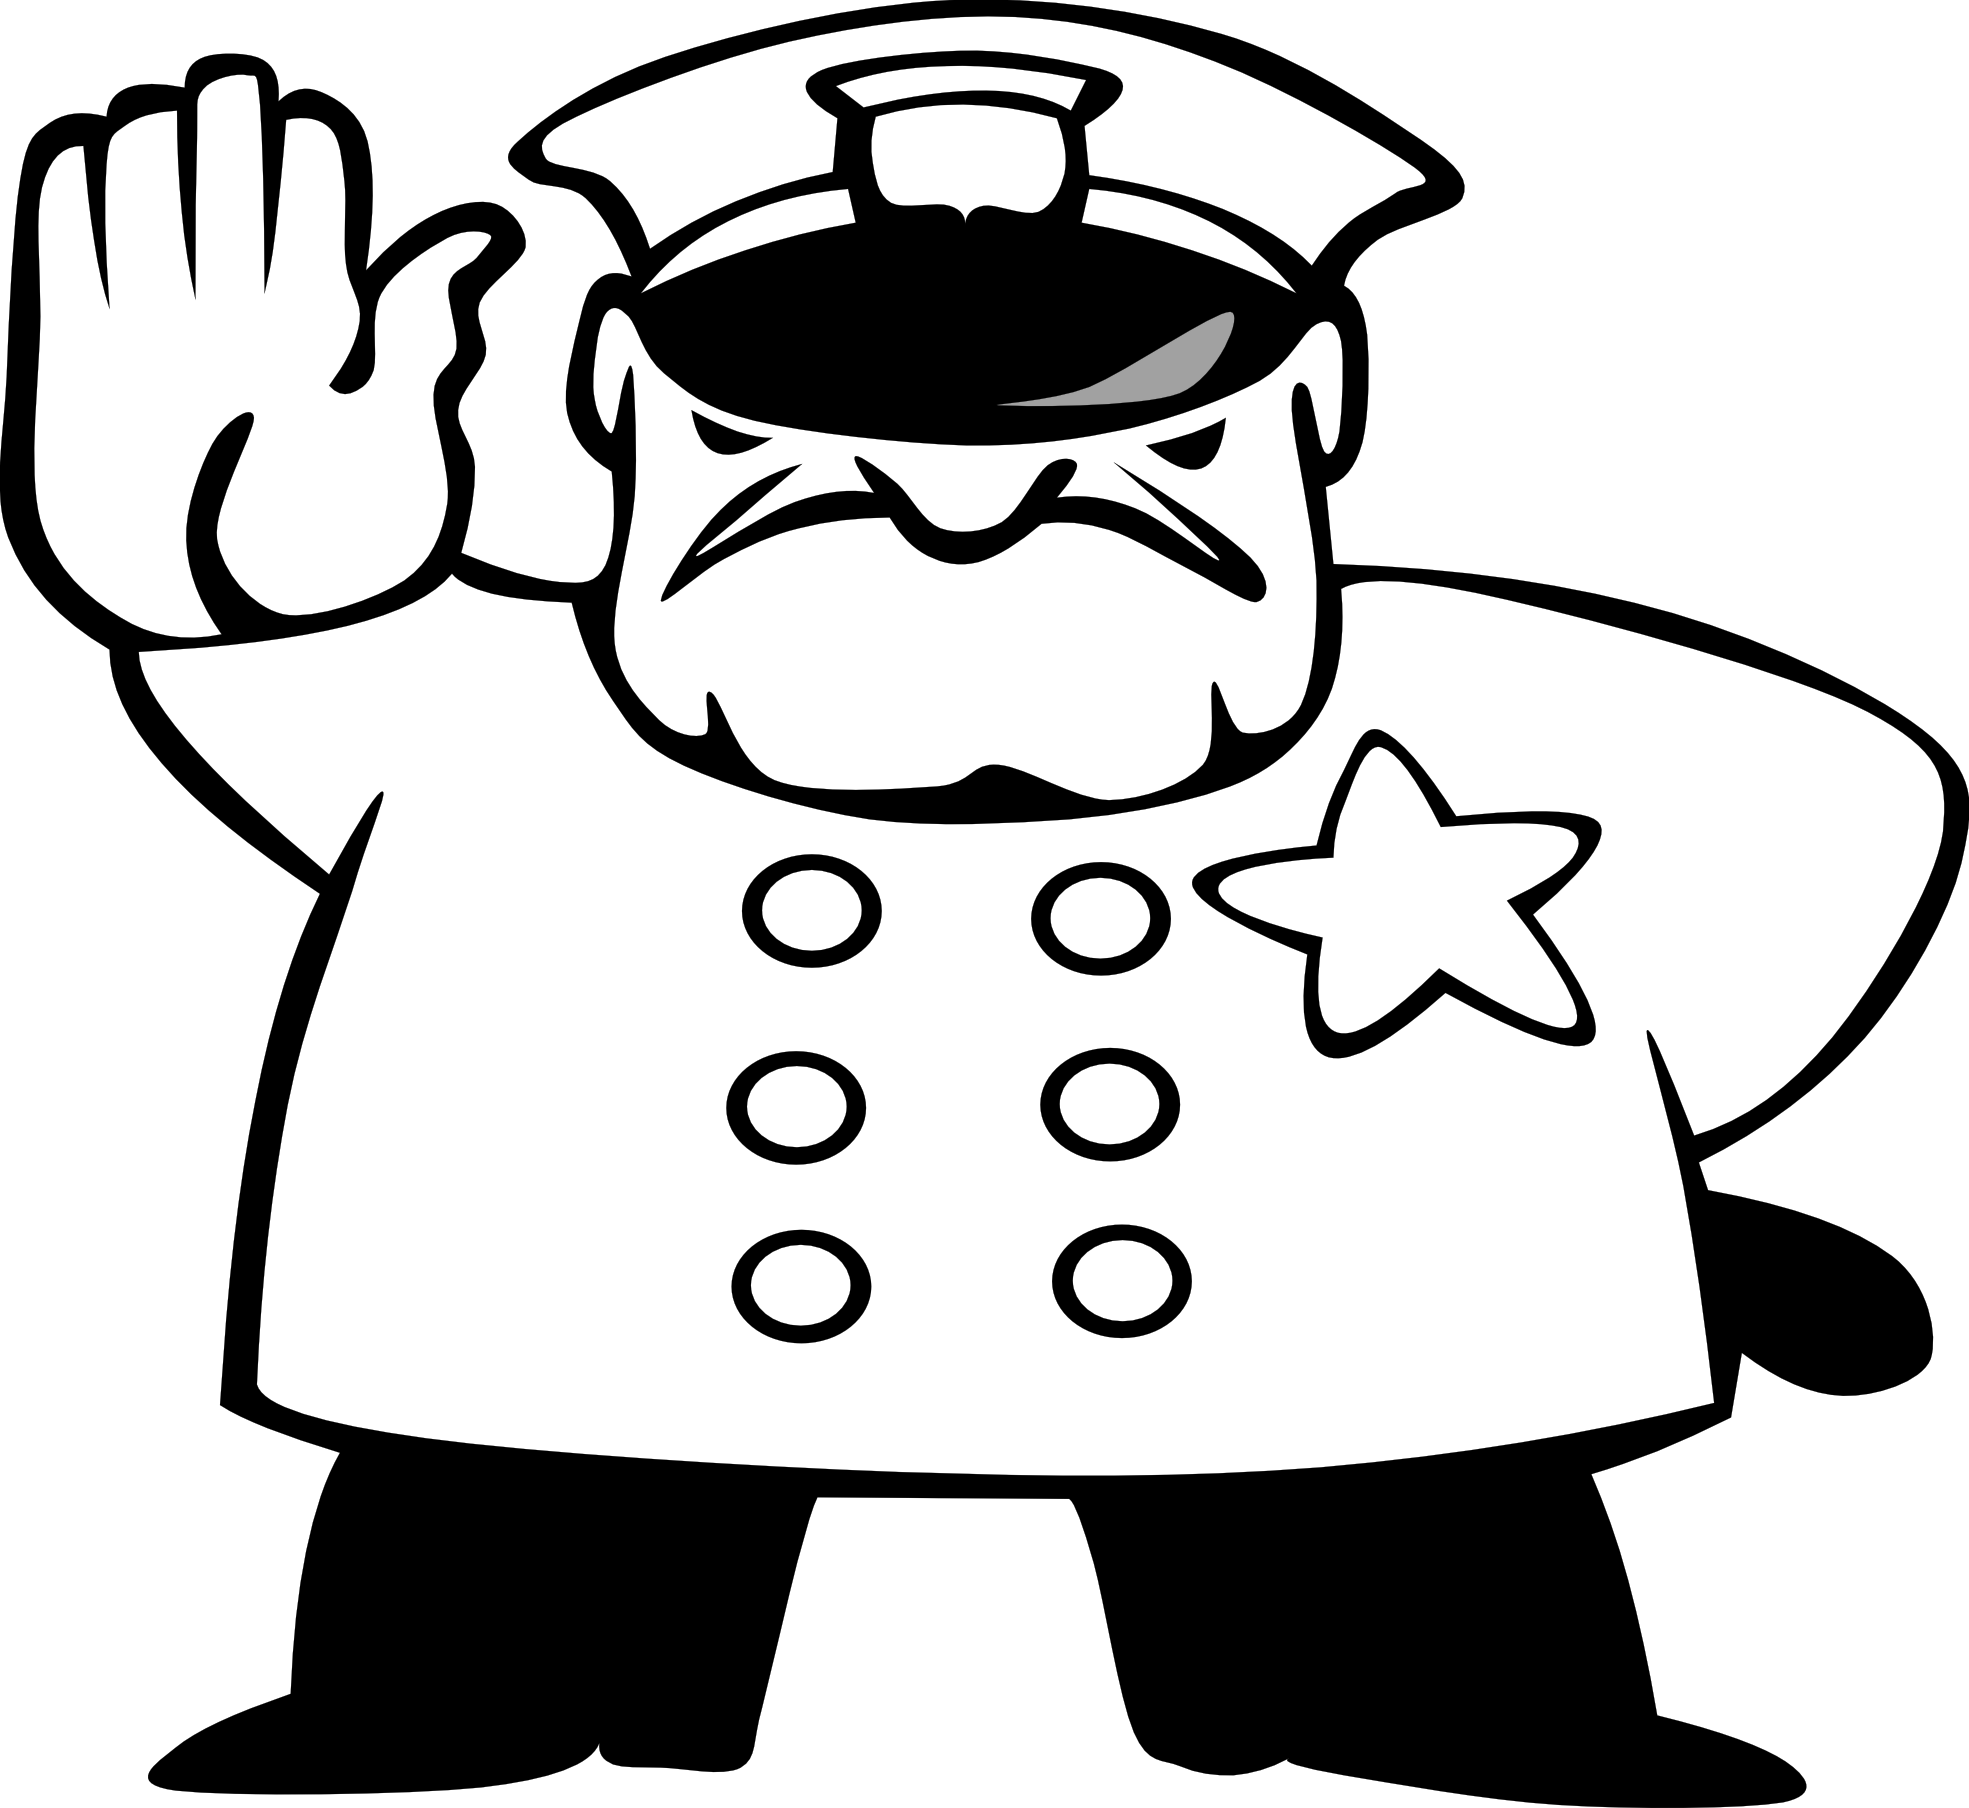 Cop clipart black and white 4 » Clipart Station.